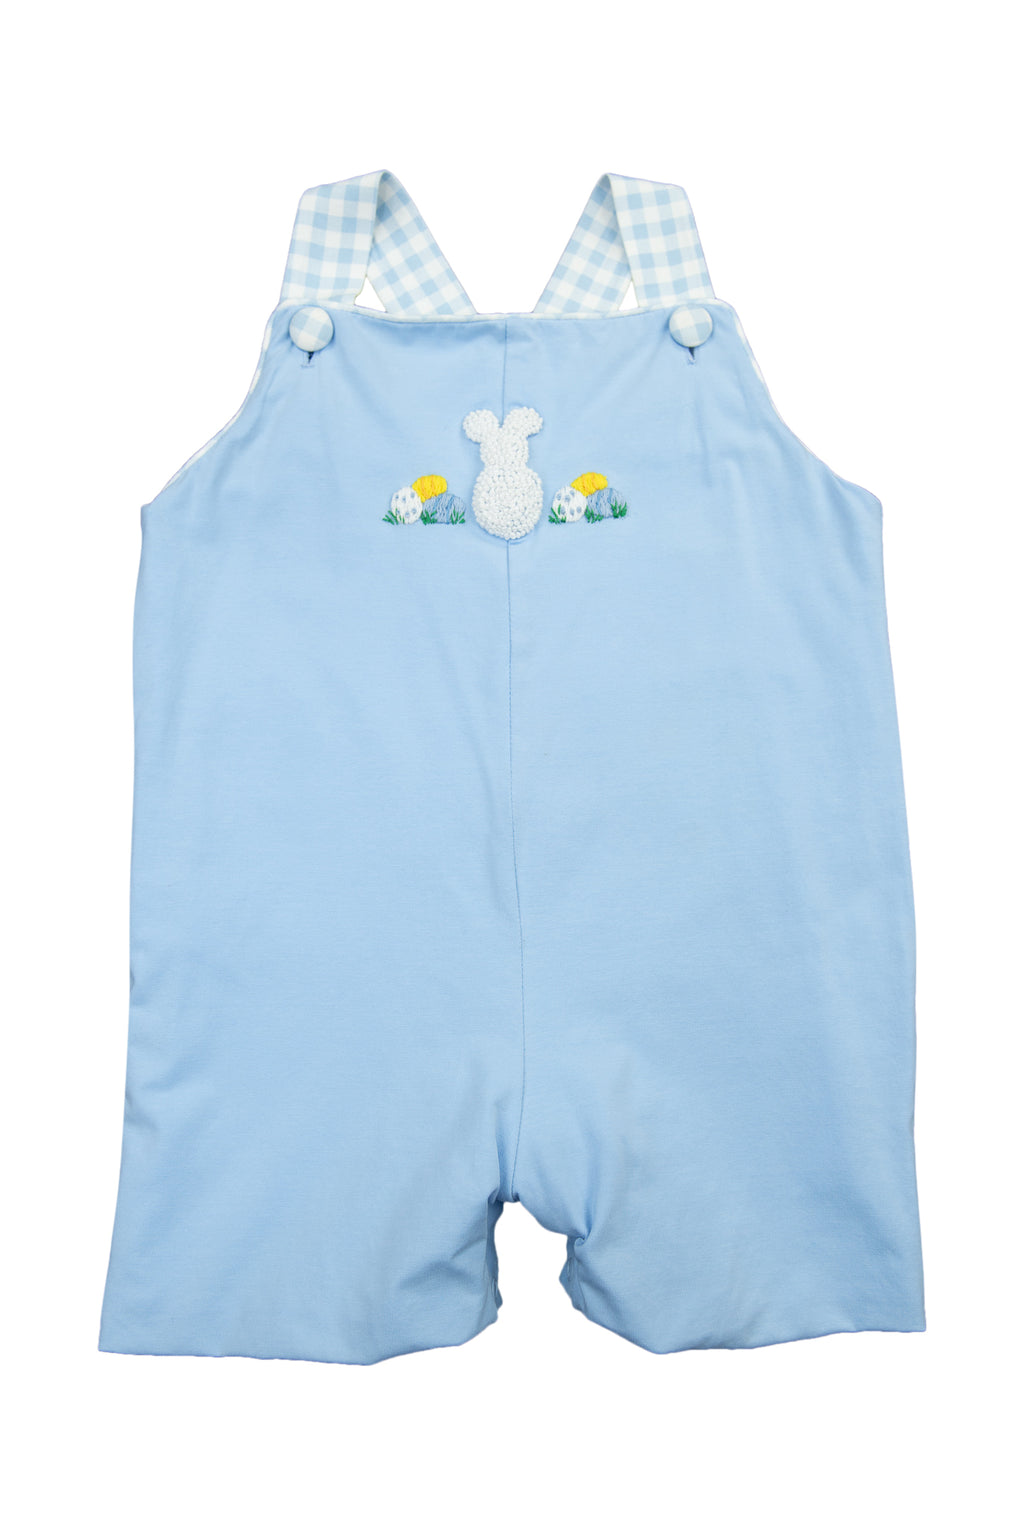 Boys French Knot Bunny/Egg Overall